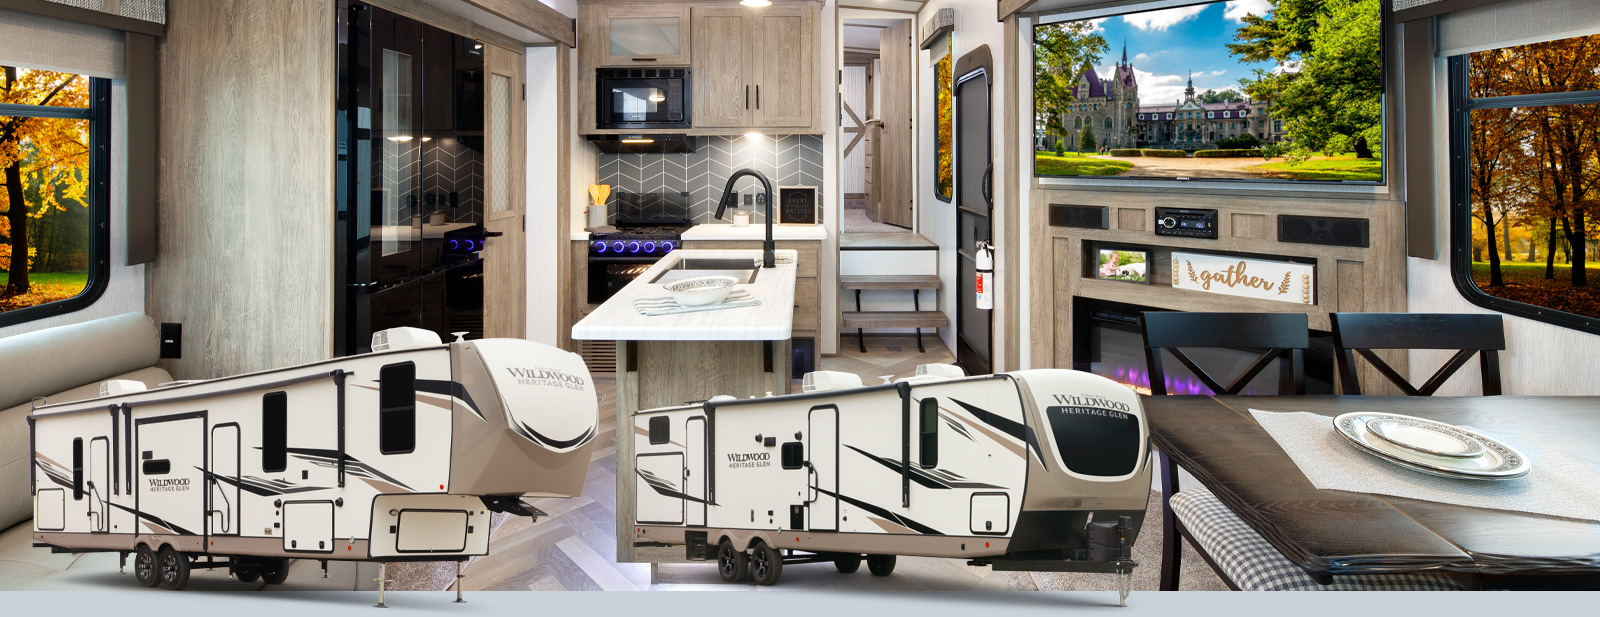 Heritage Glen | Forest River RV - Manufacturer of Travel Trailers